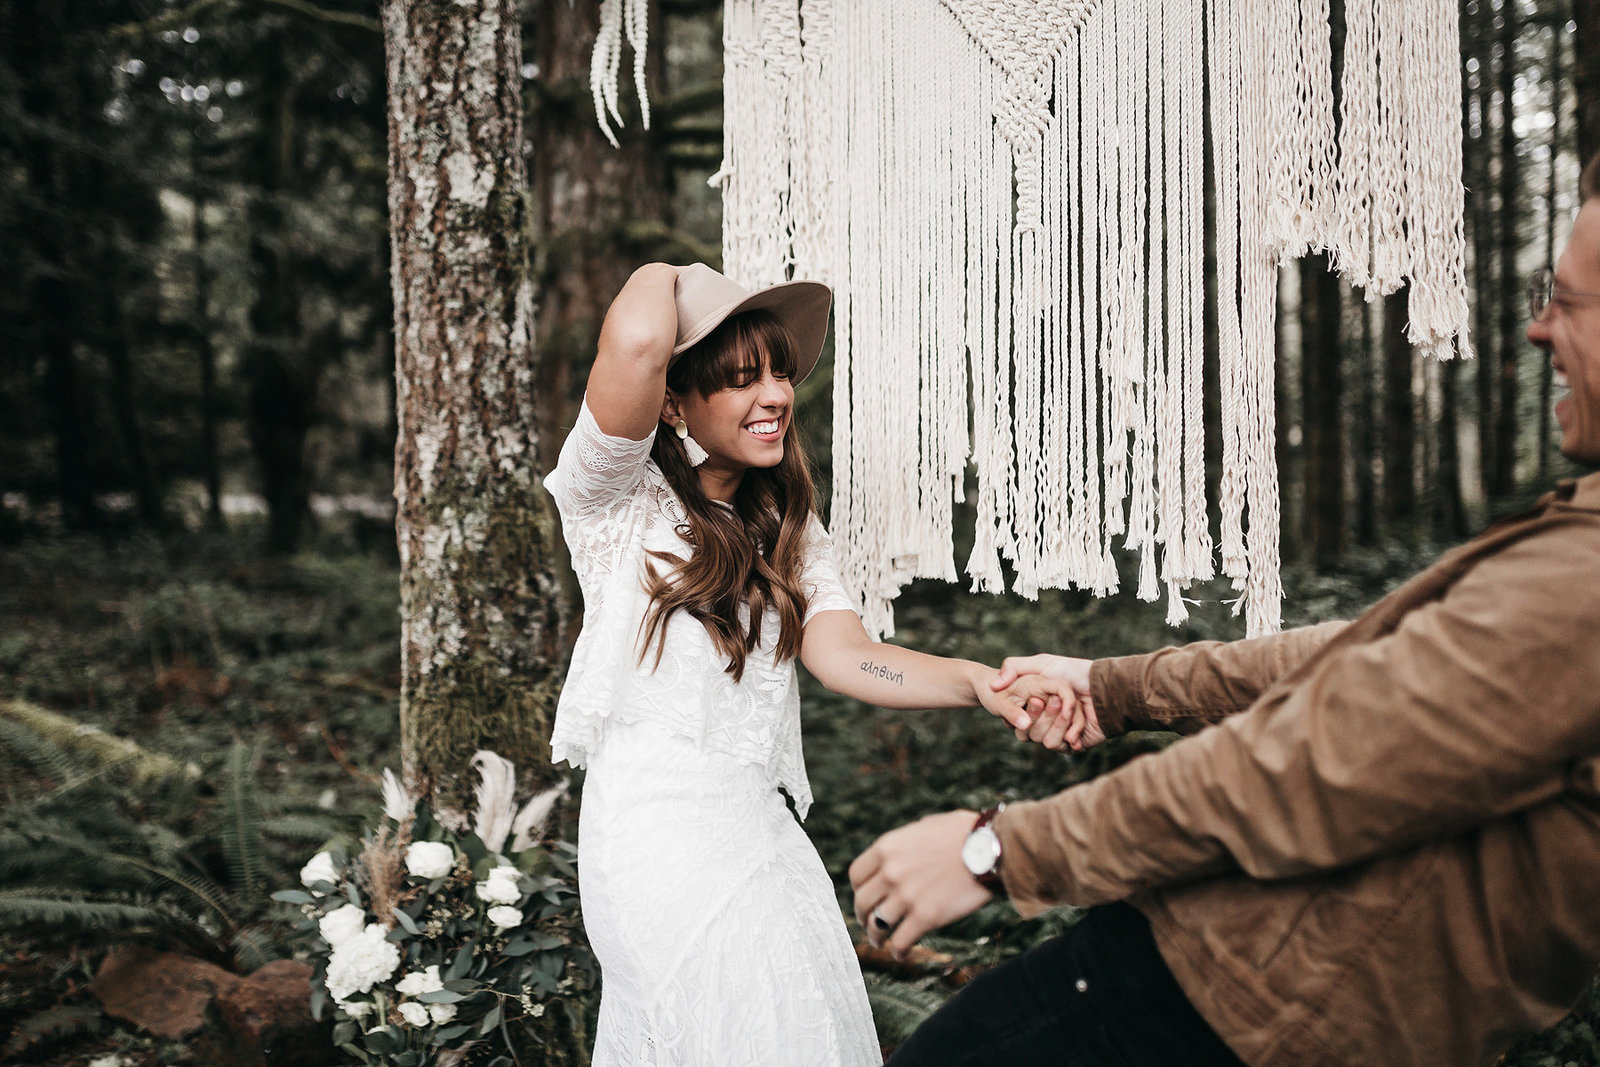 white-magazine-athena-camron-seattle-oregon-wedding-photography-woodlands-house-boho-elopement-inspiration-46